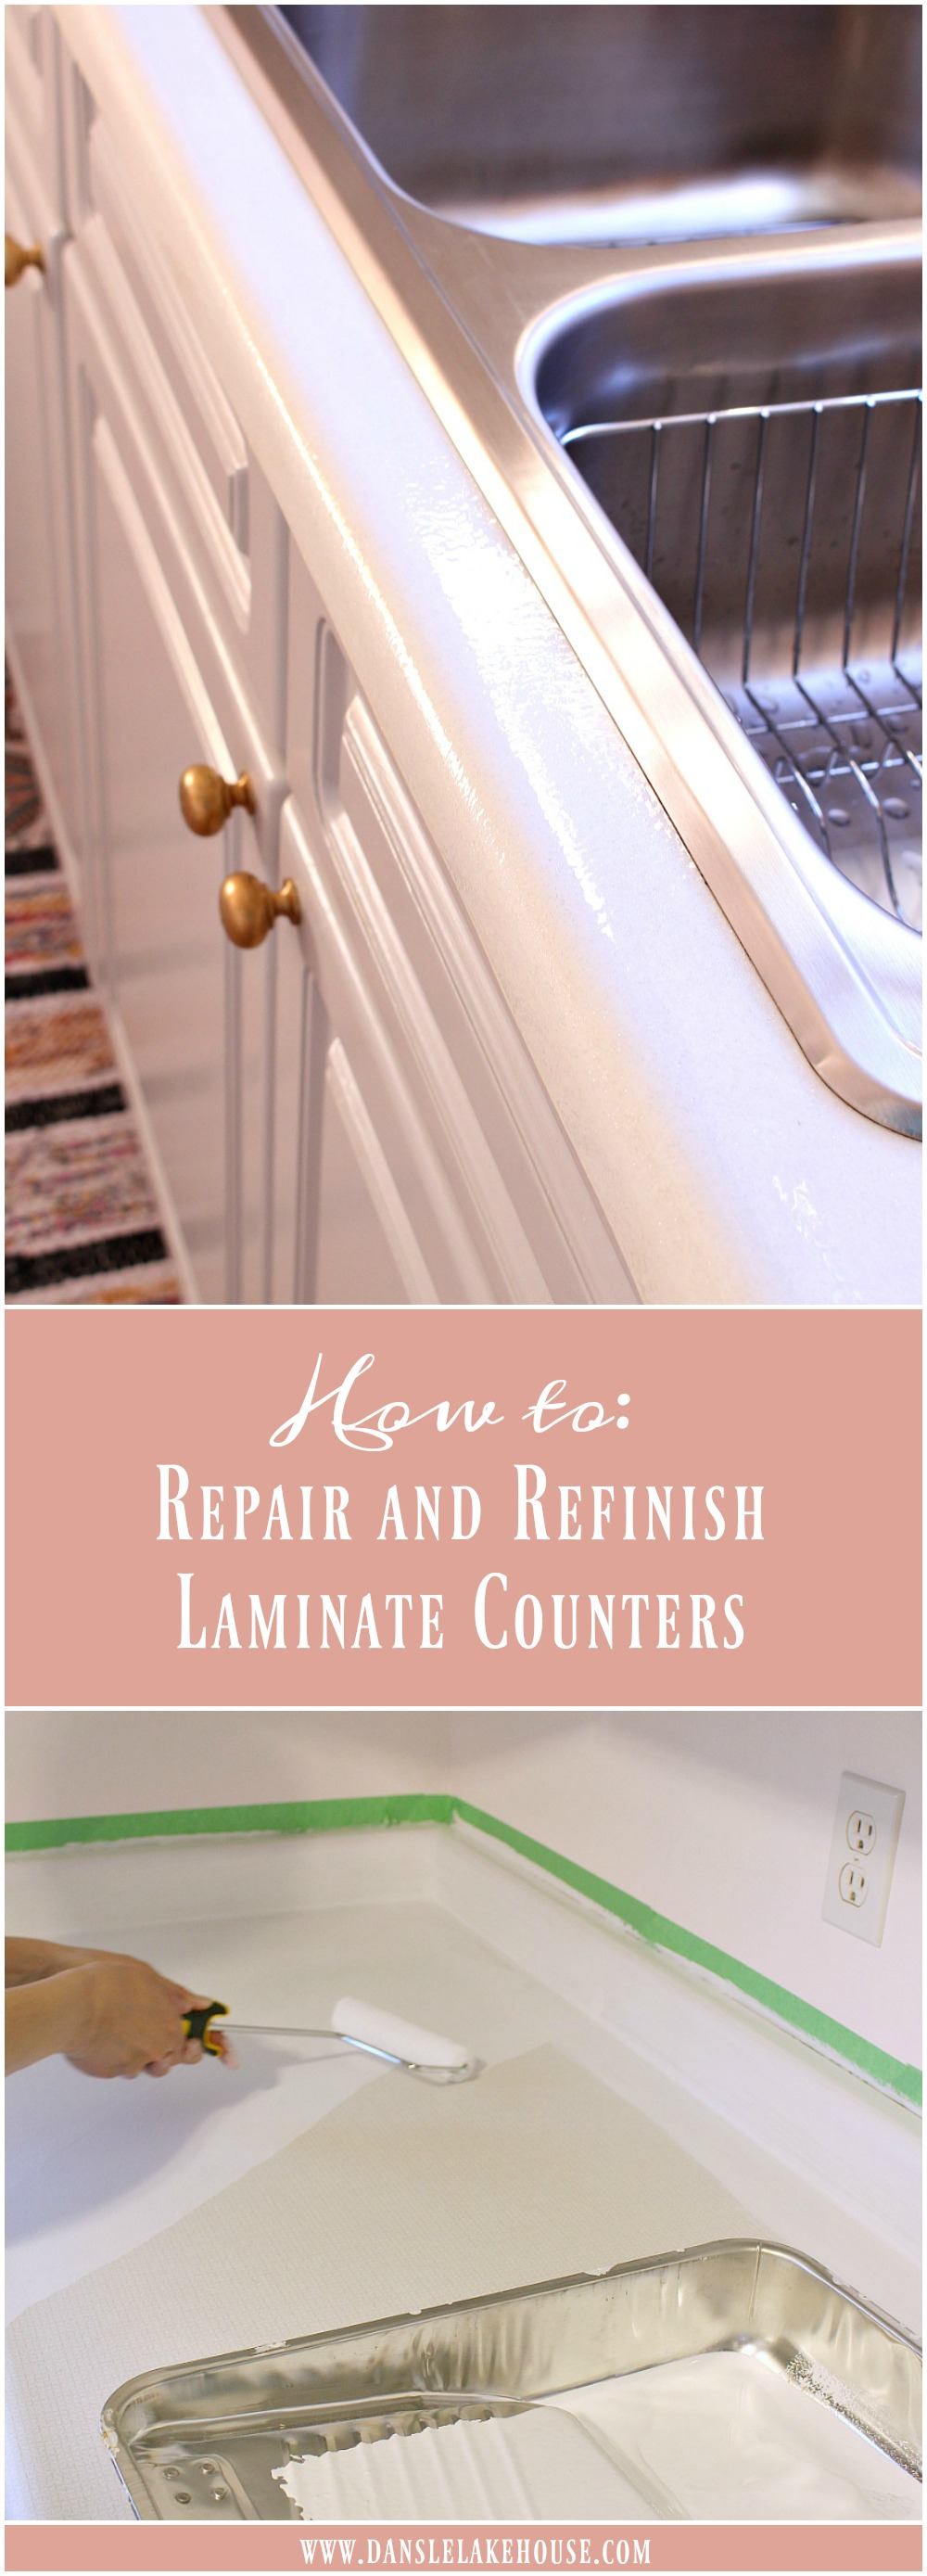 How to Repair and Refinish Laminate Counters